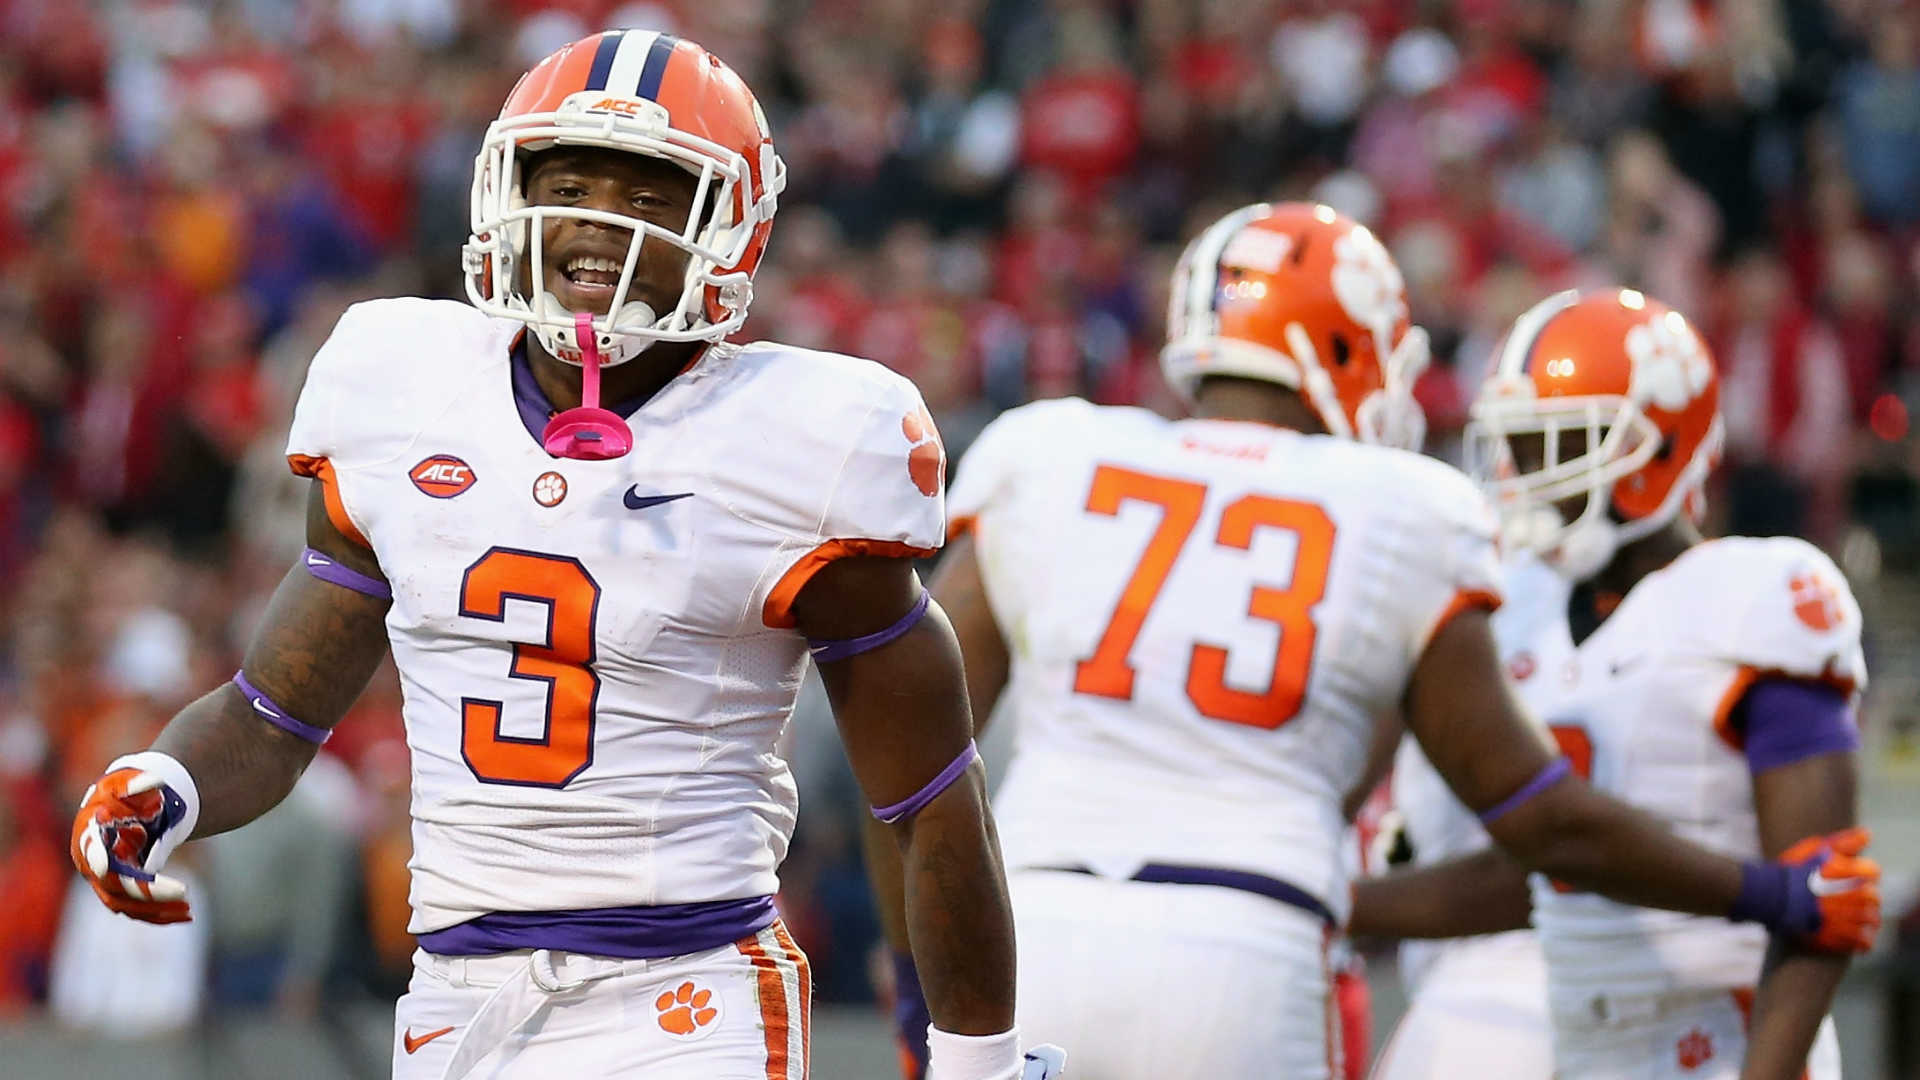 clemson-10312015-us-news-getty-ftr